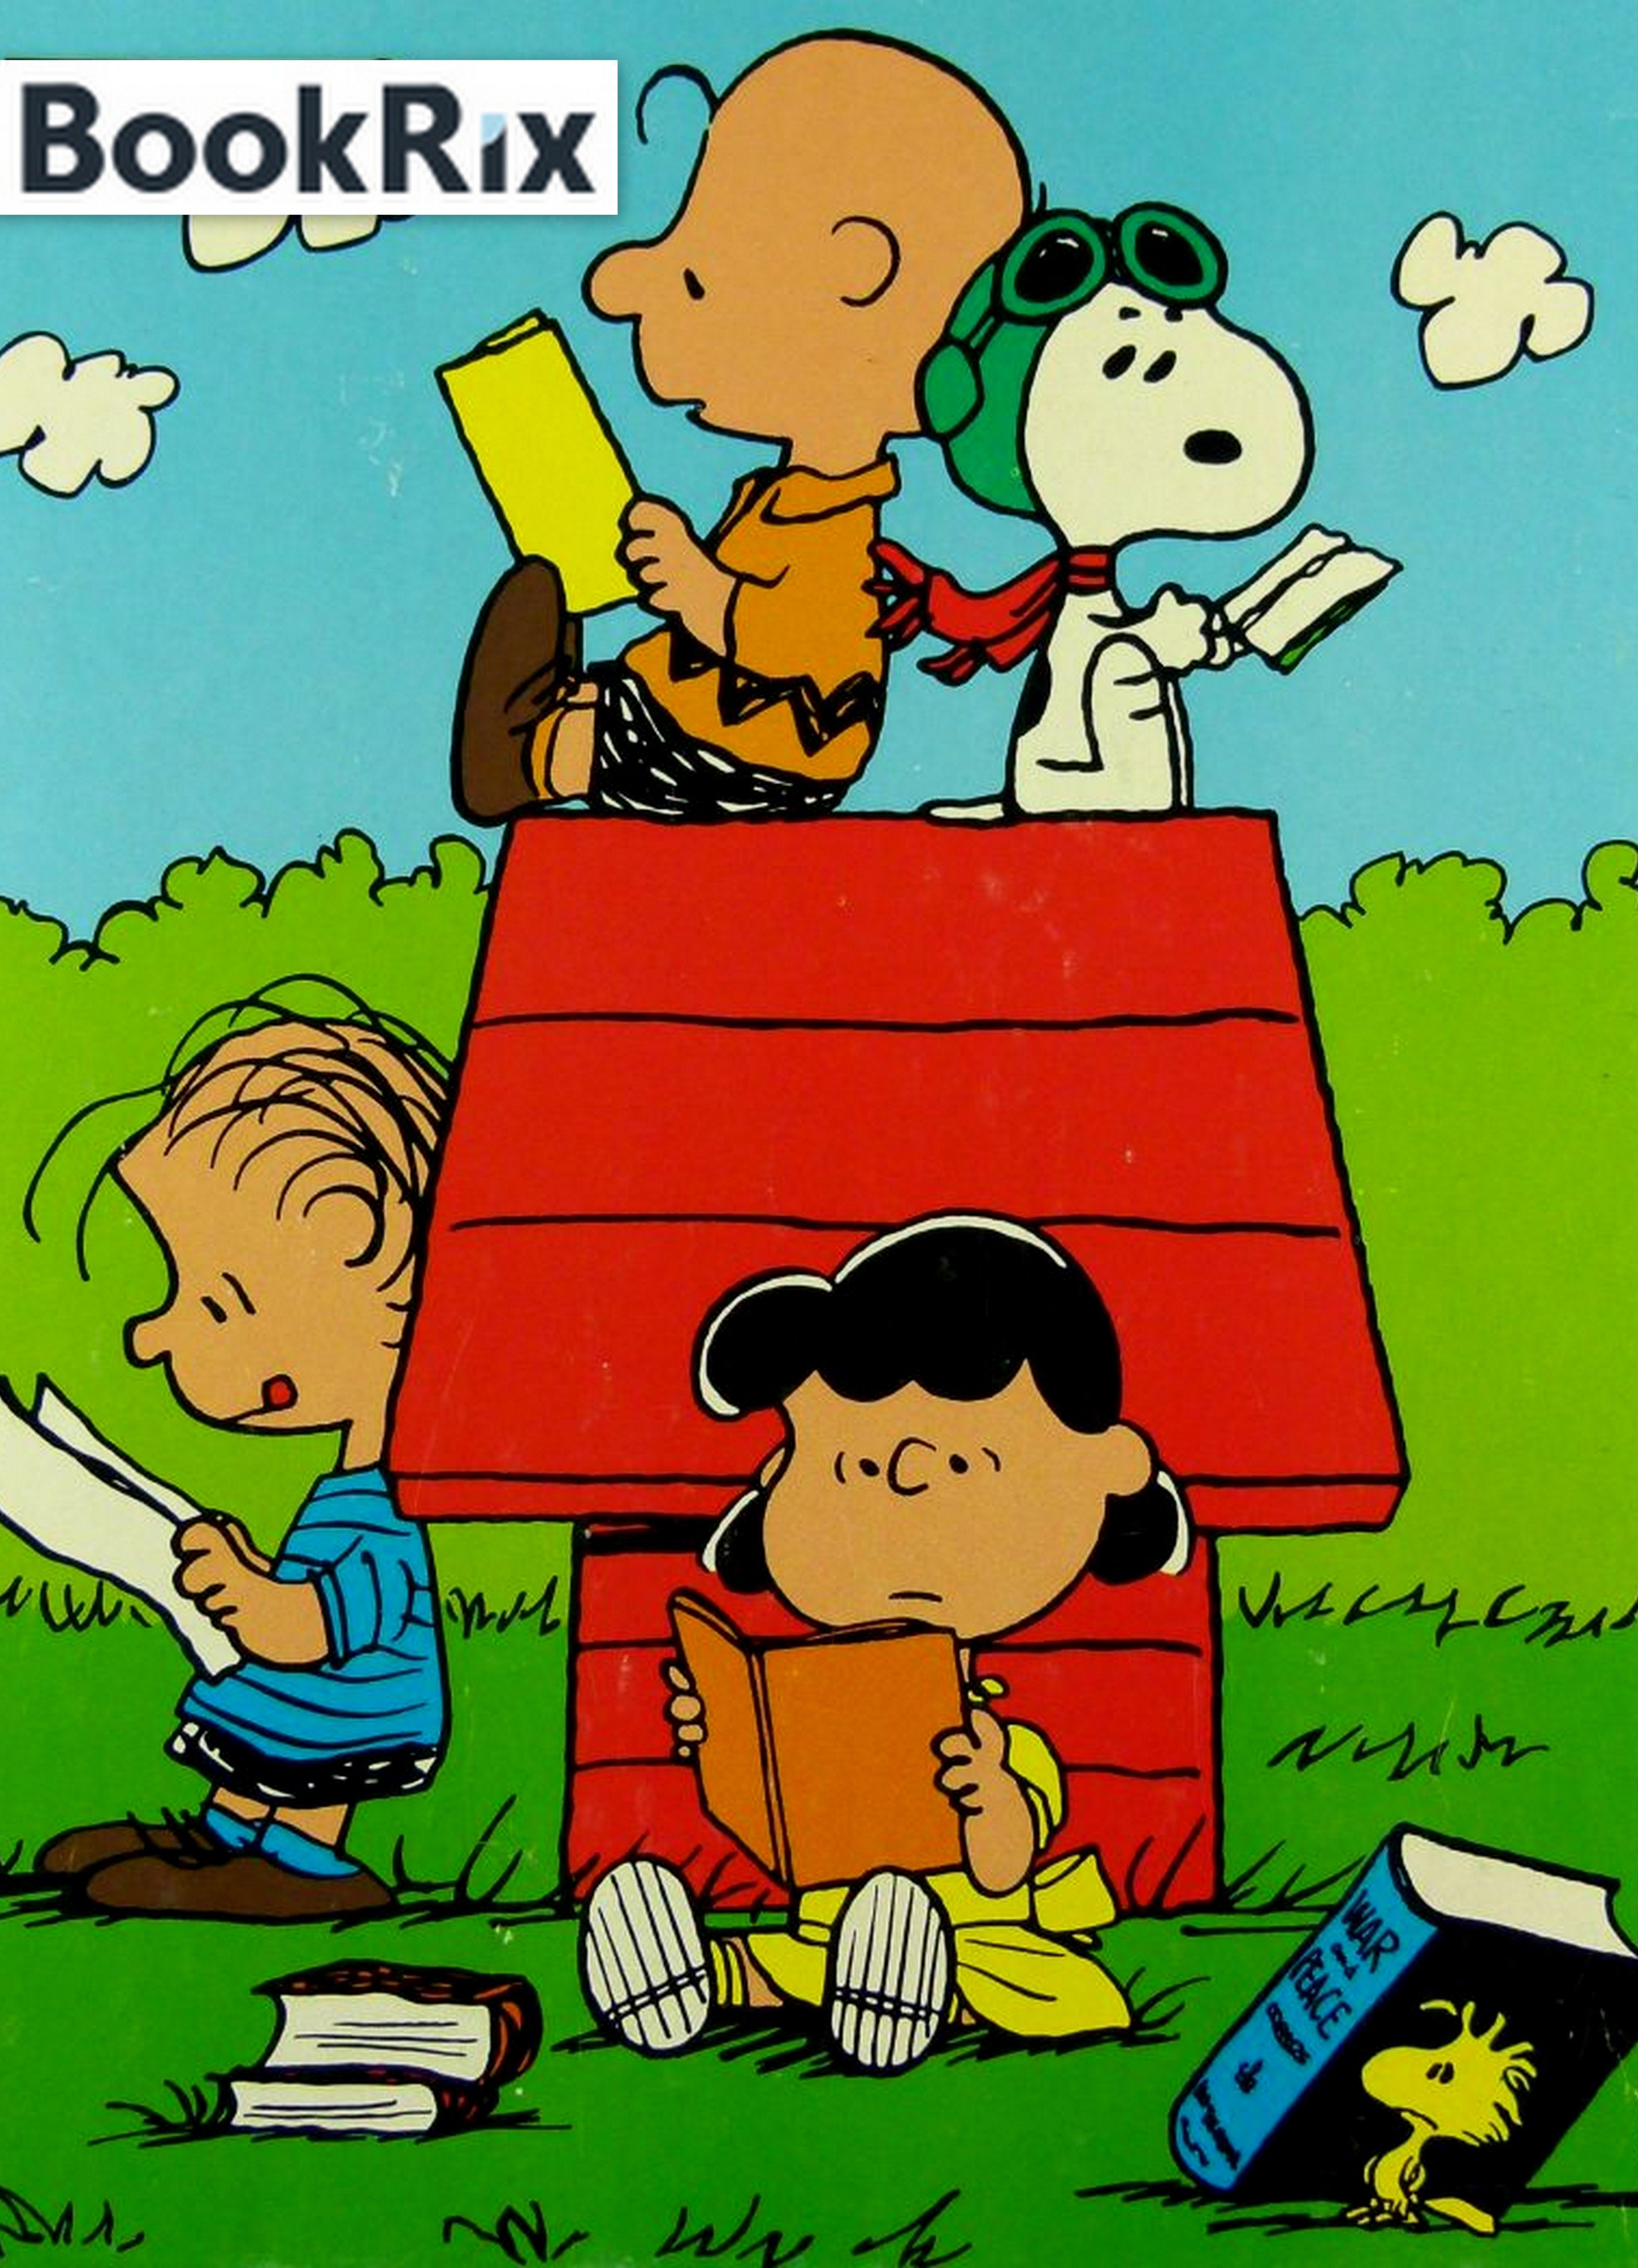 charlie brown reading book - Google Search   Llibres/personatges ...